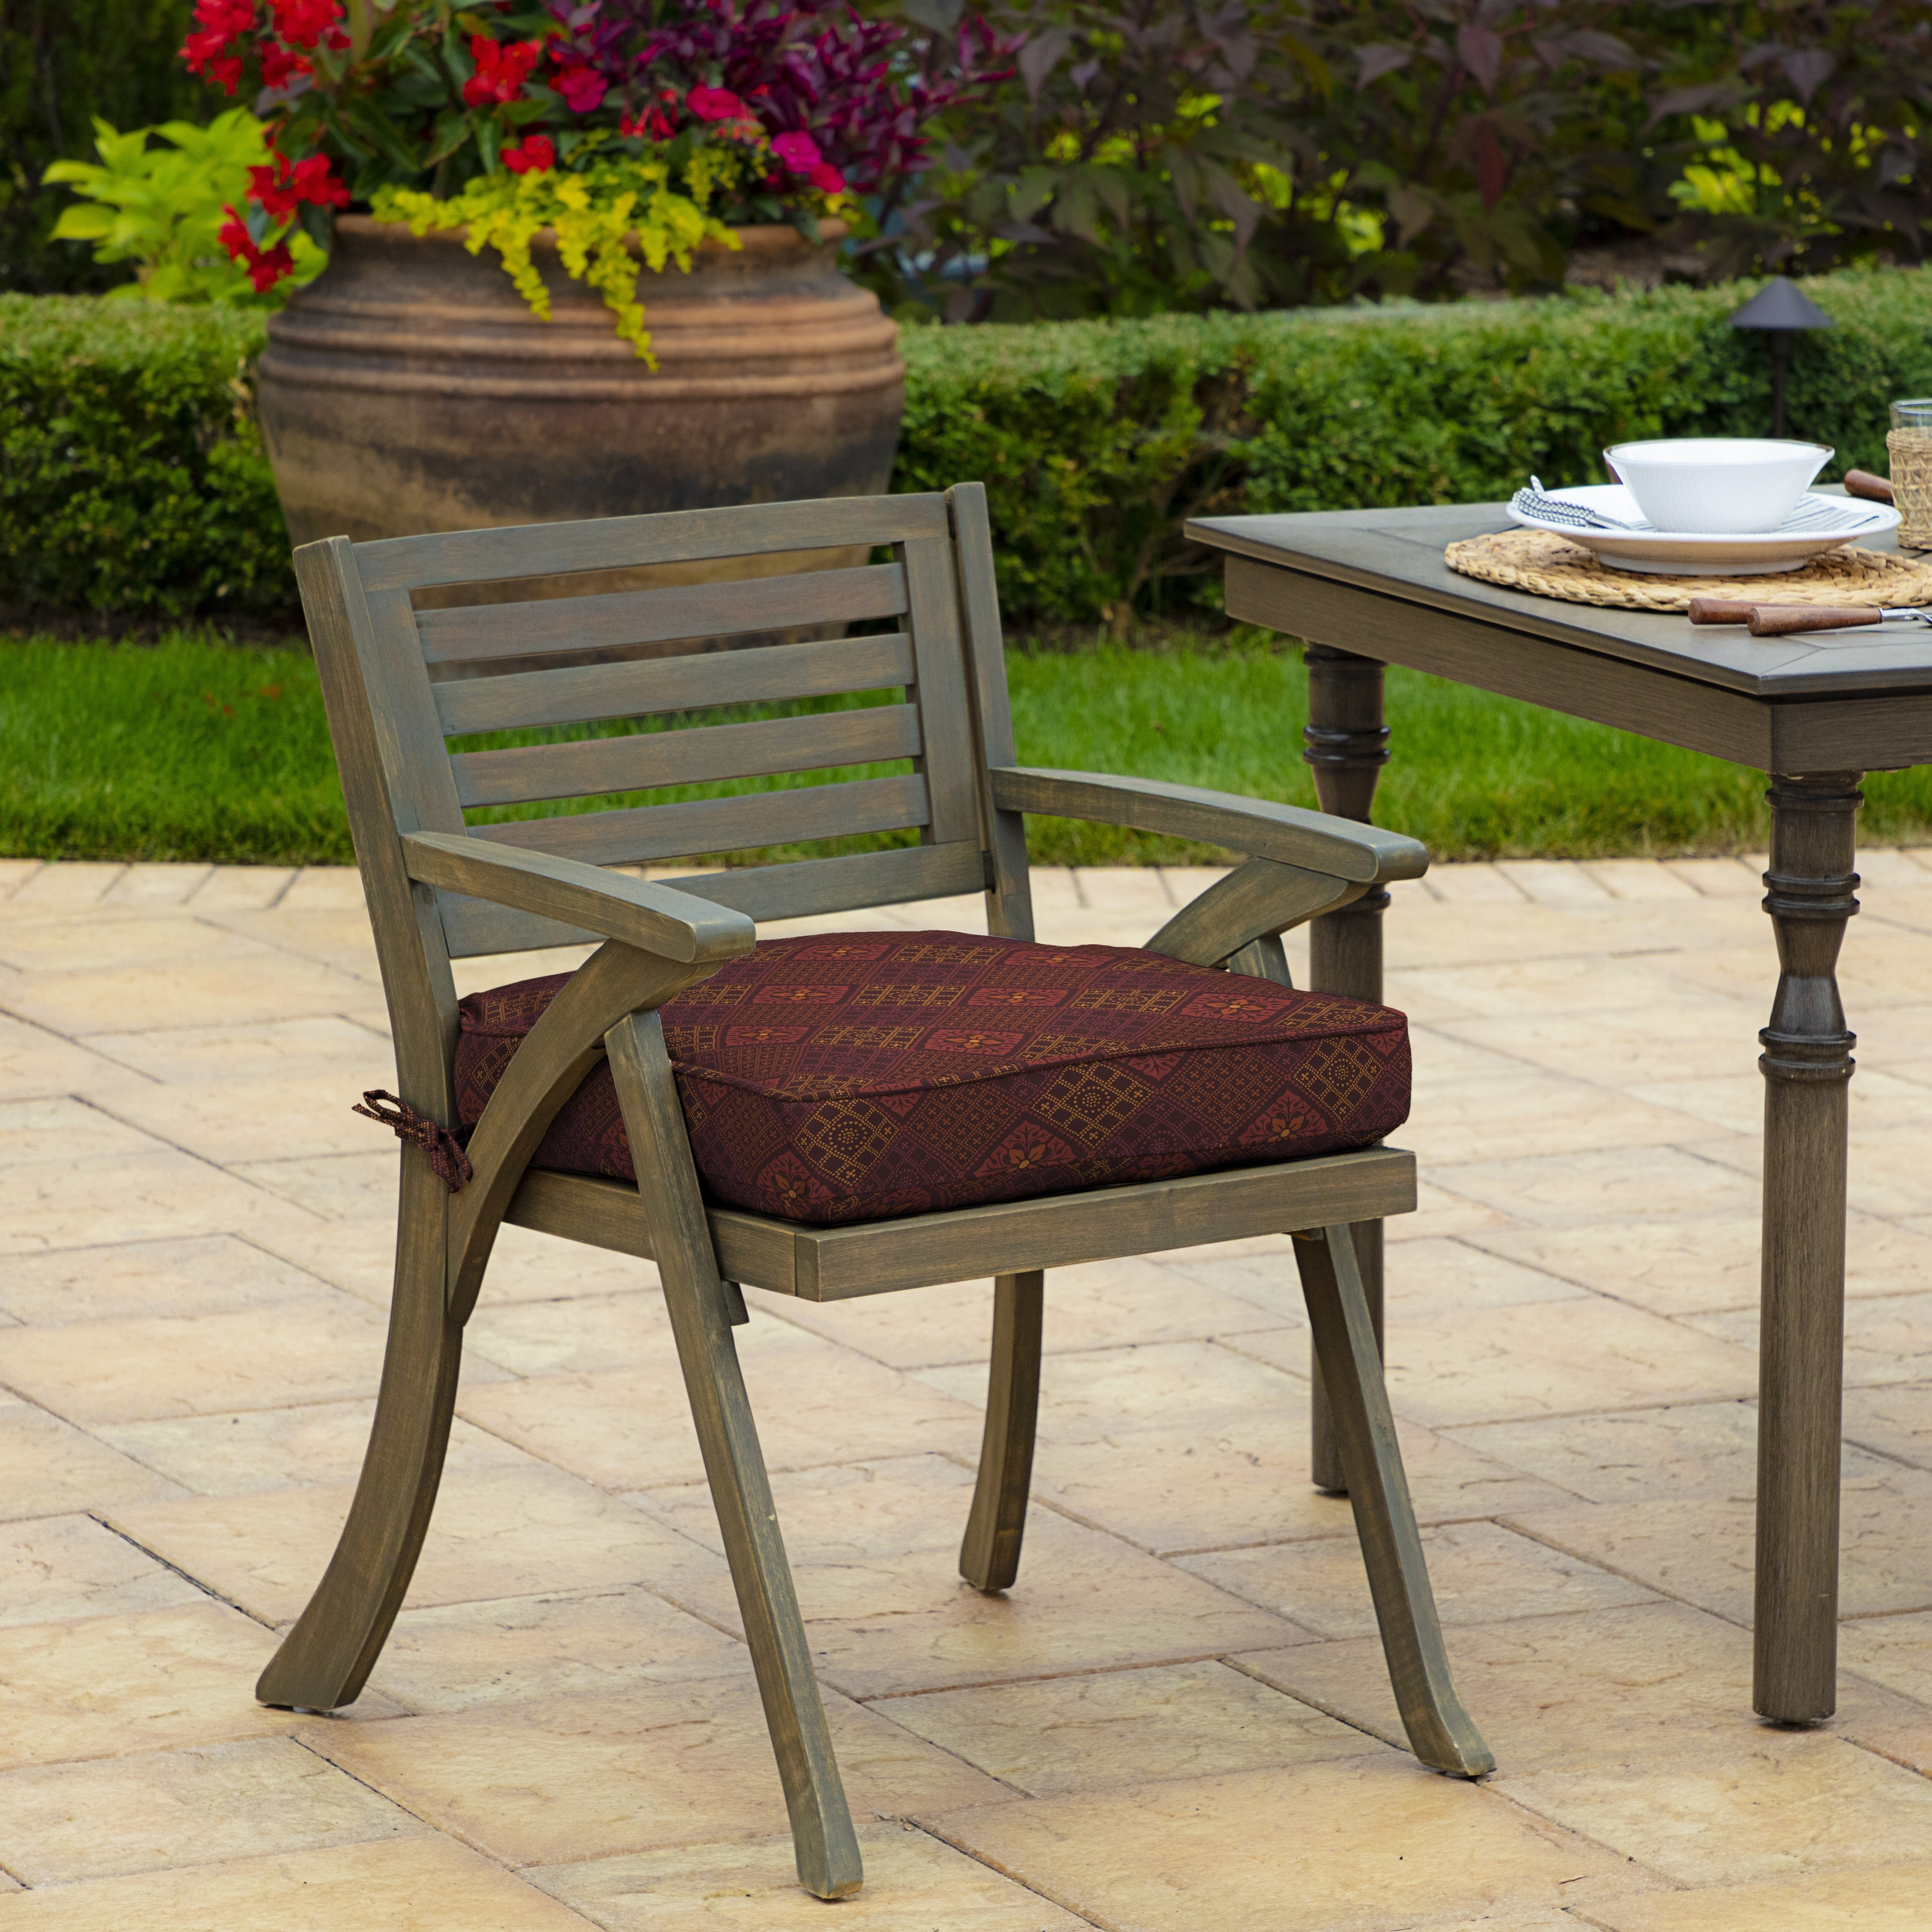 Arden Selections Azulejo Southwest Outdoor Welted Dining Seat Cushion 2 Pack 21 In L X 21 In W X 5 In H Overstock 29628510